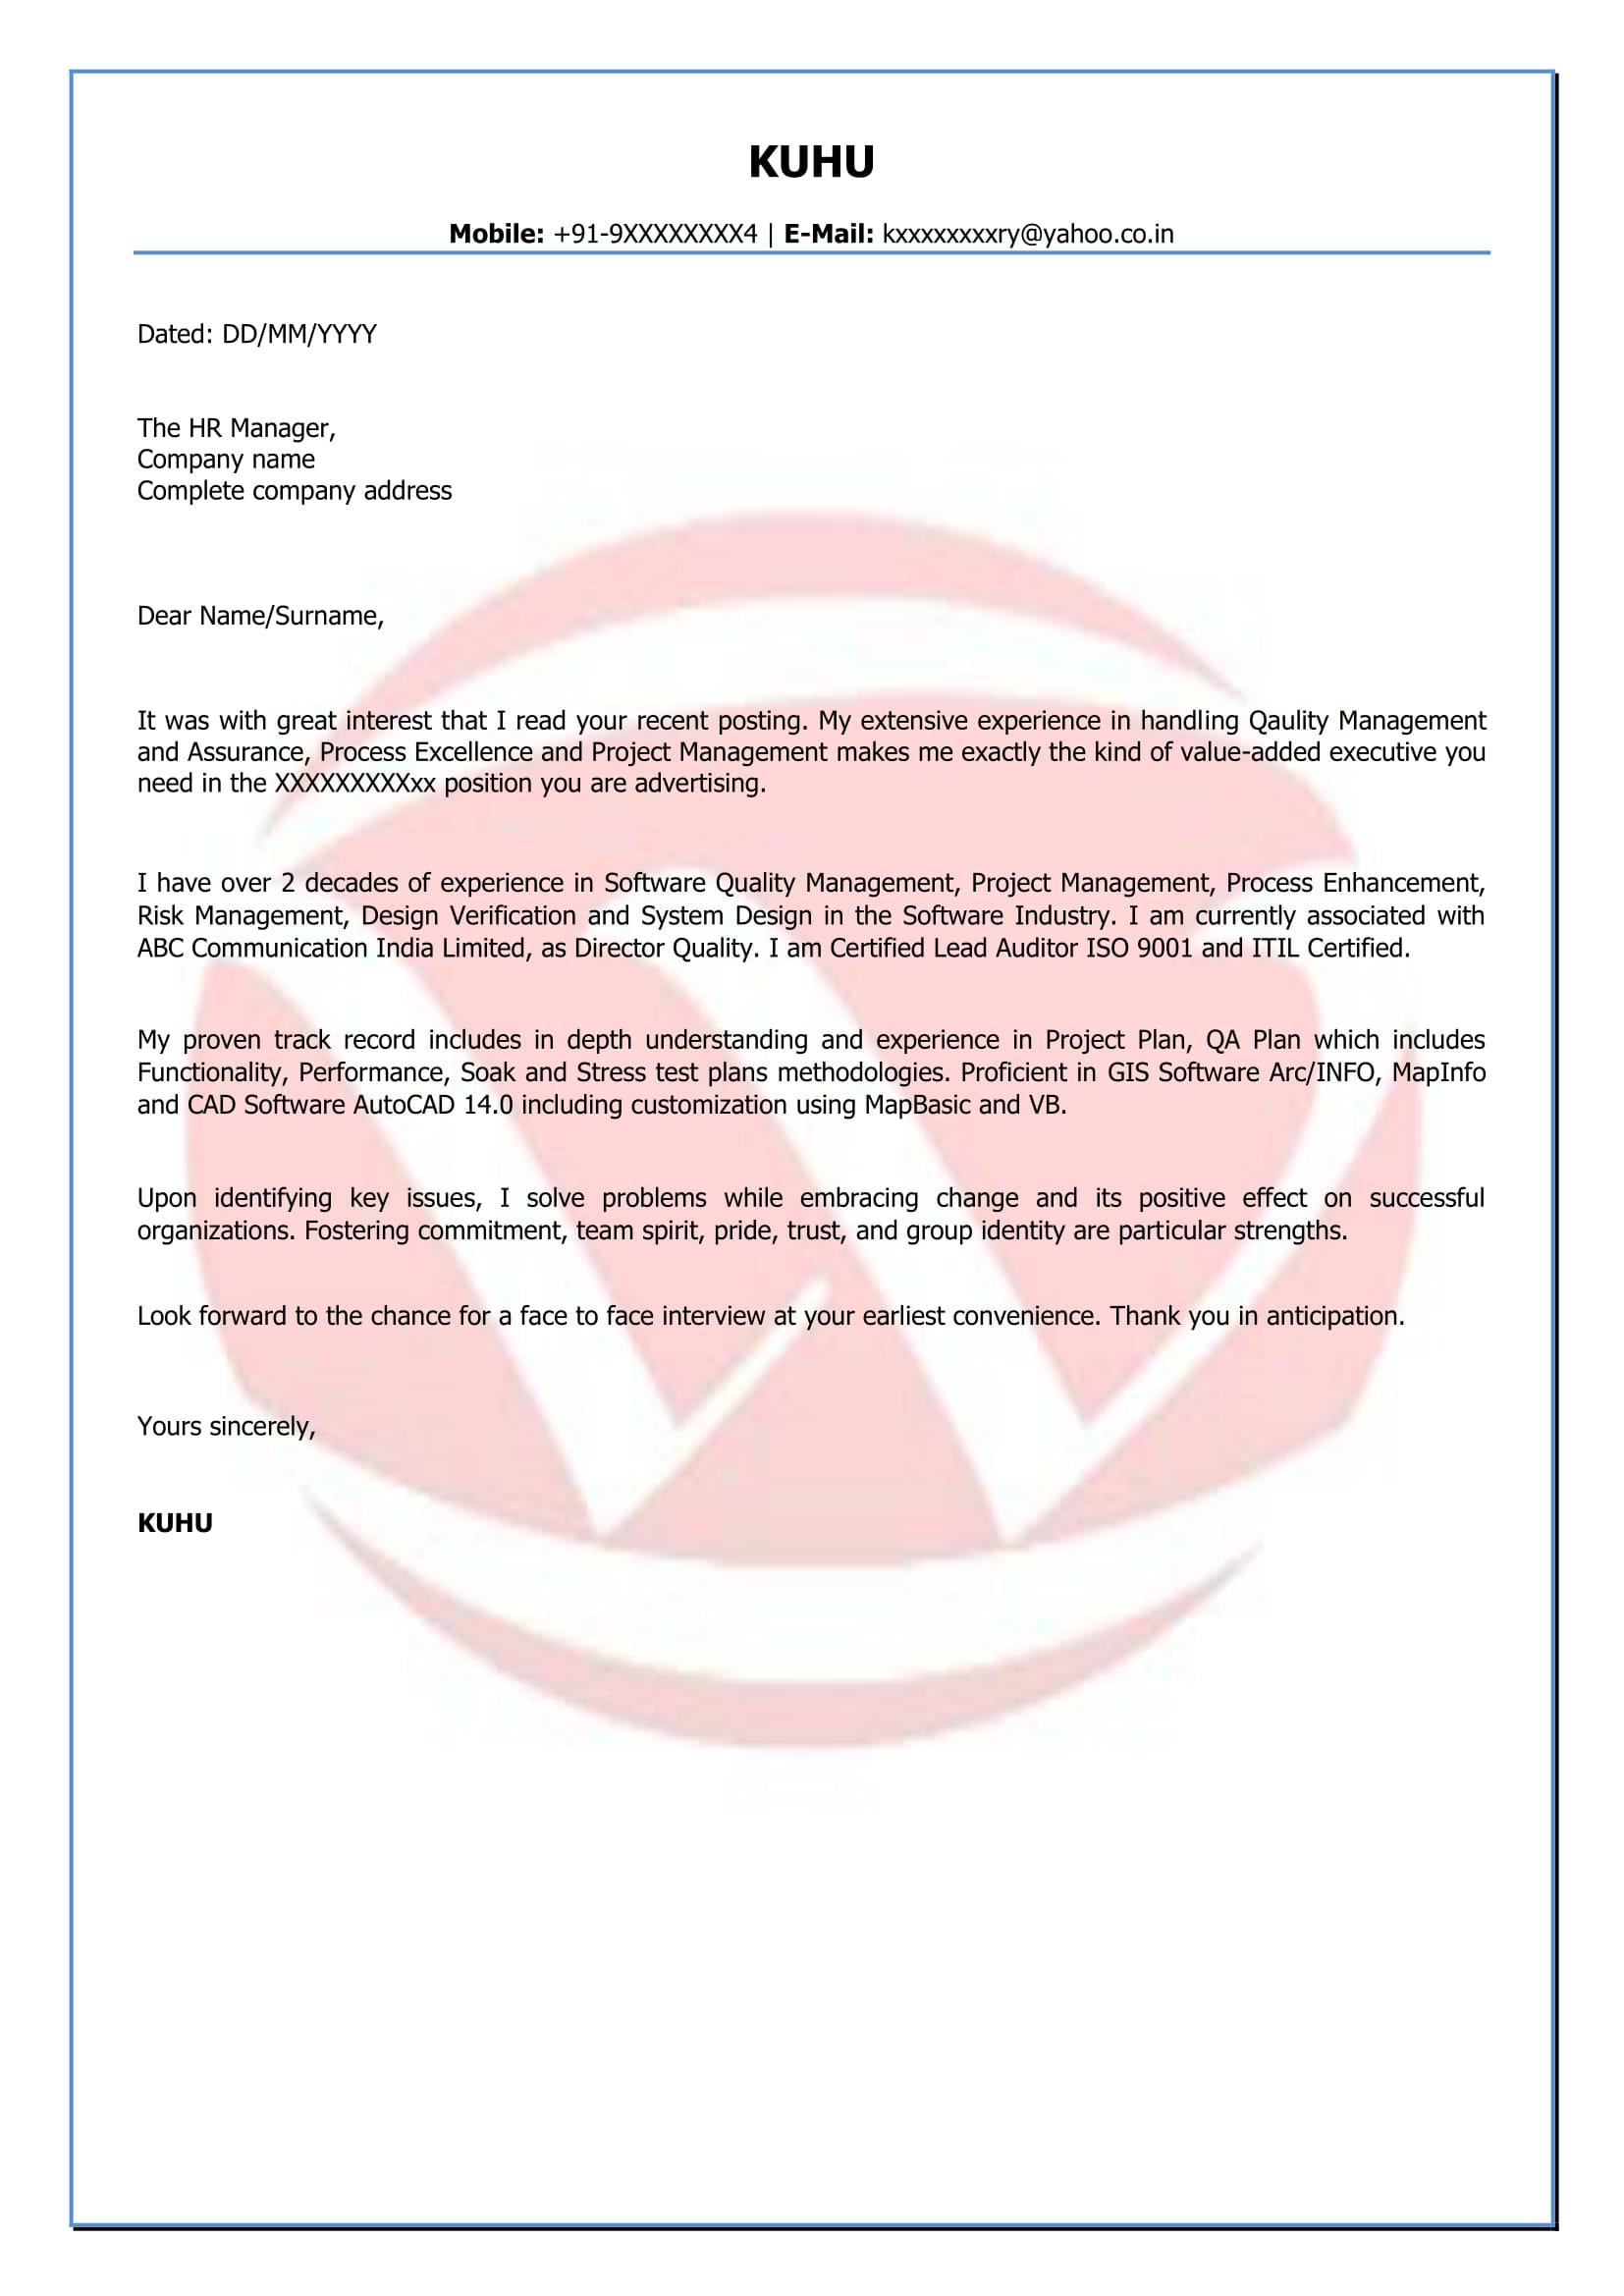 Quality Control Sample Cover Letter Format, Download Cover Letter ...